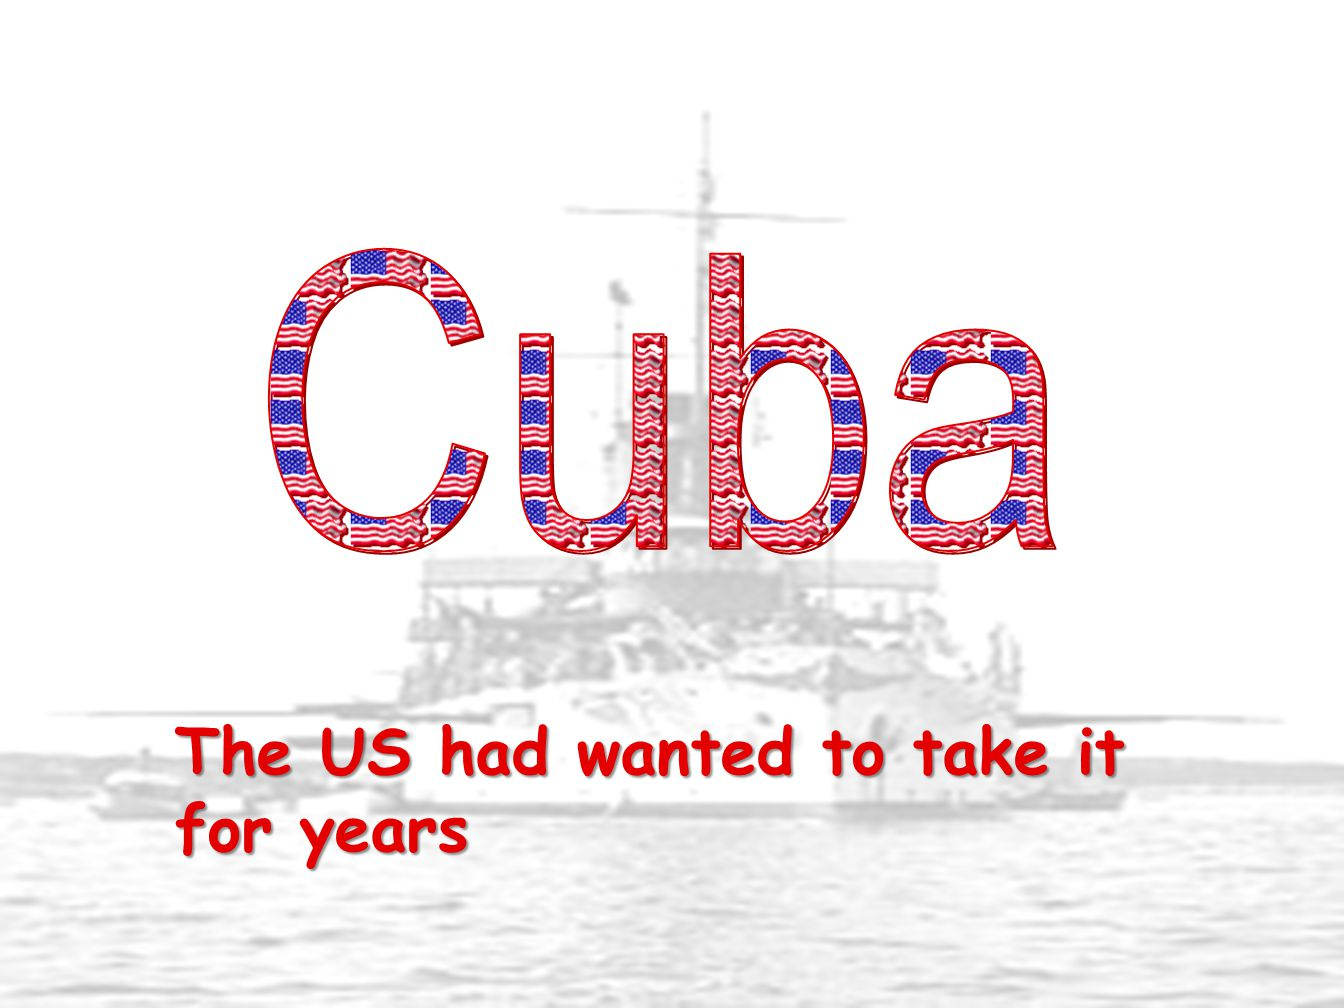 Cuba The US had wanted to take it for years